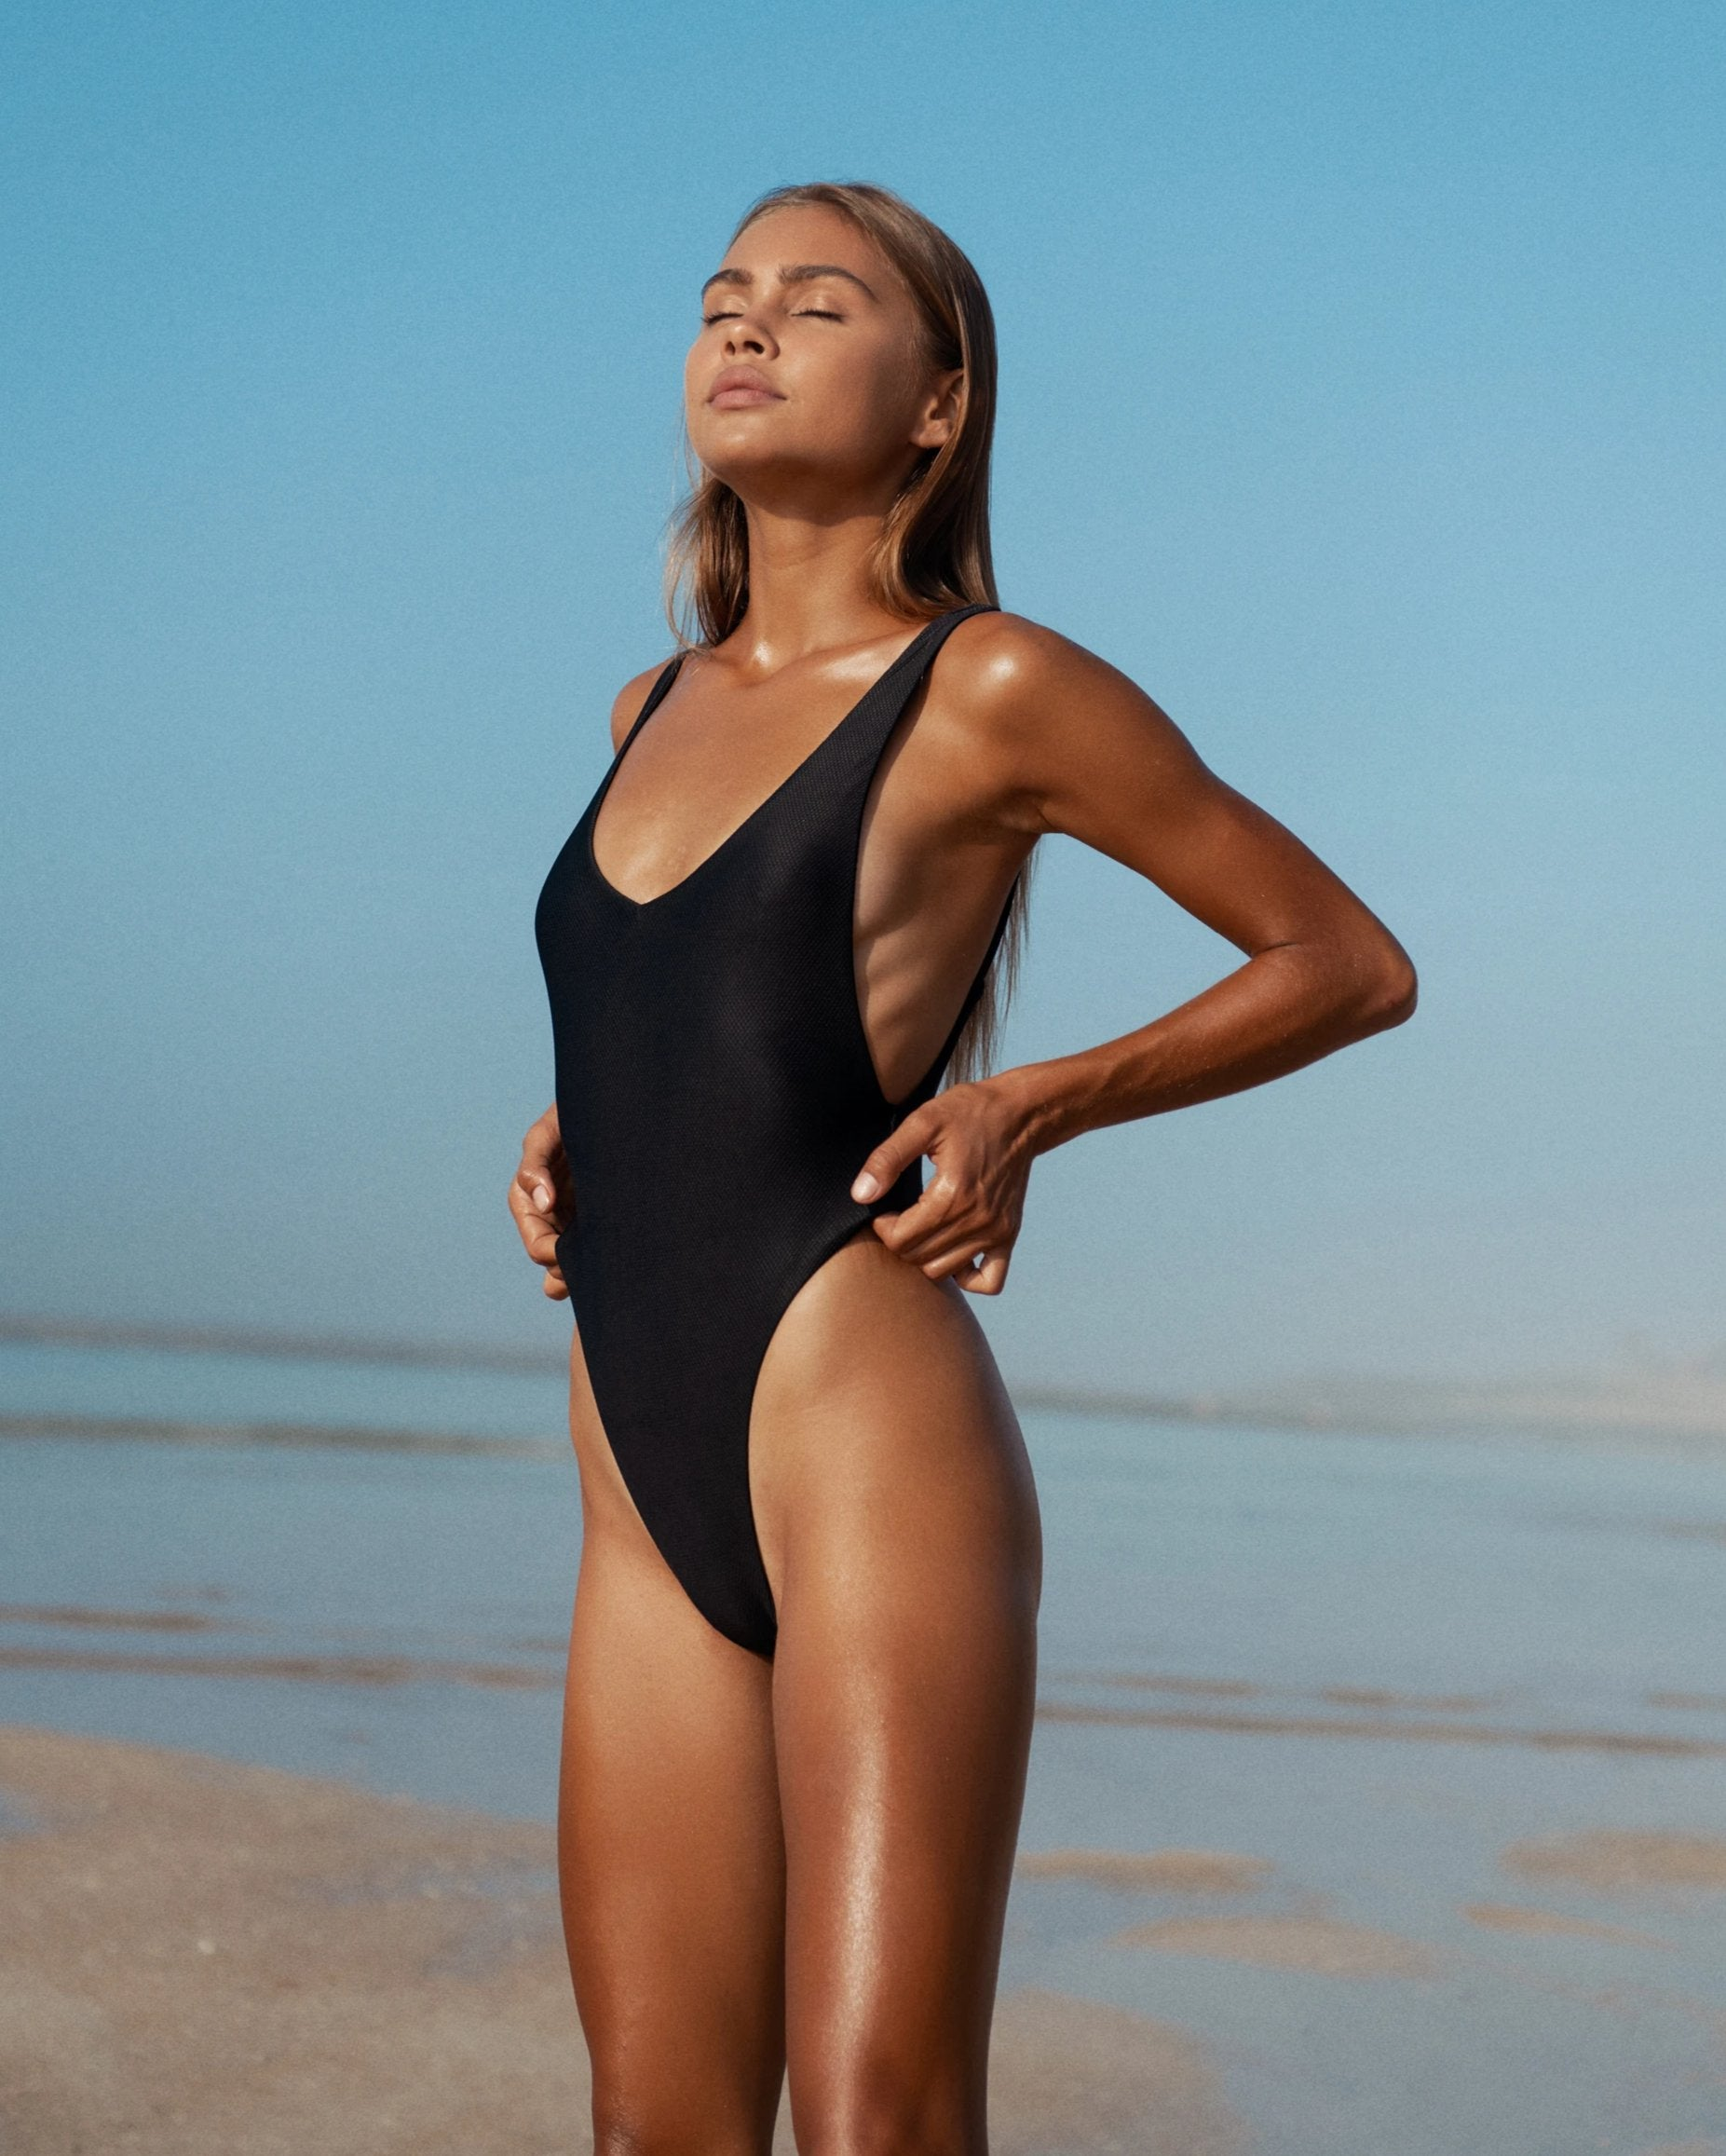 iixiist Crawford Bodysuit Ink Black One Piece Bikini Seamless Swimwear frankiiswim frankie swim frankie swimwear